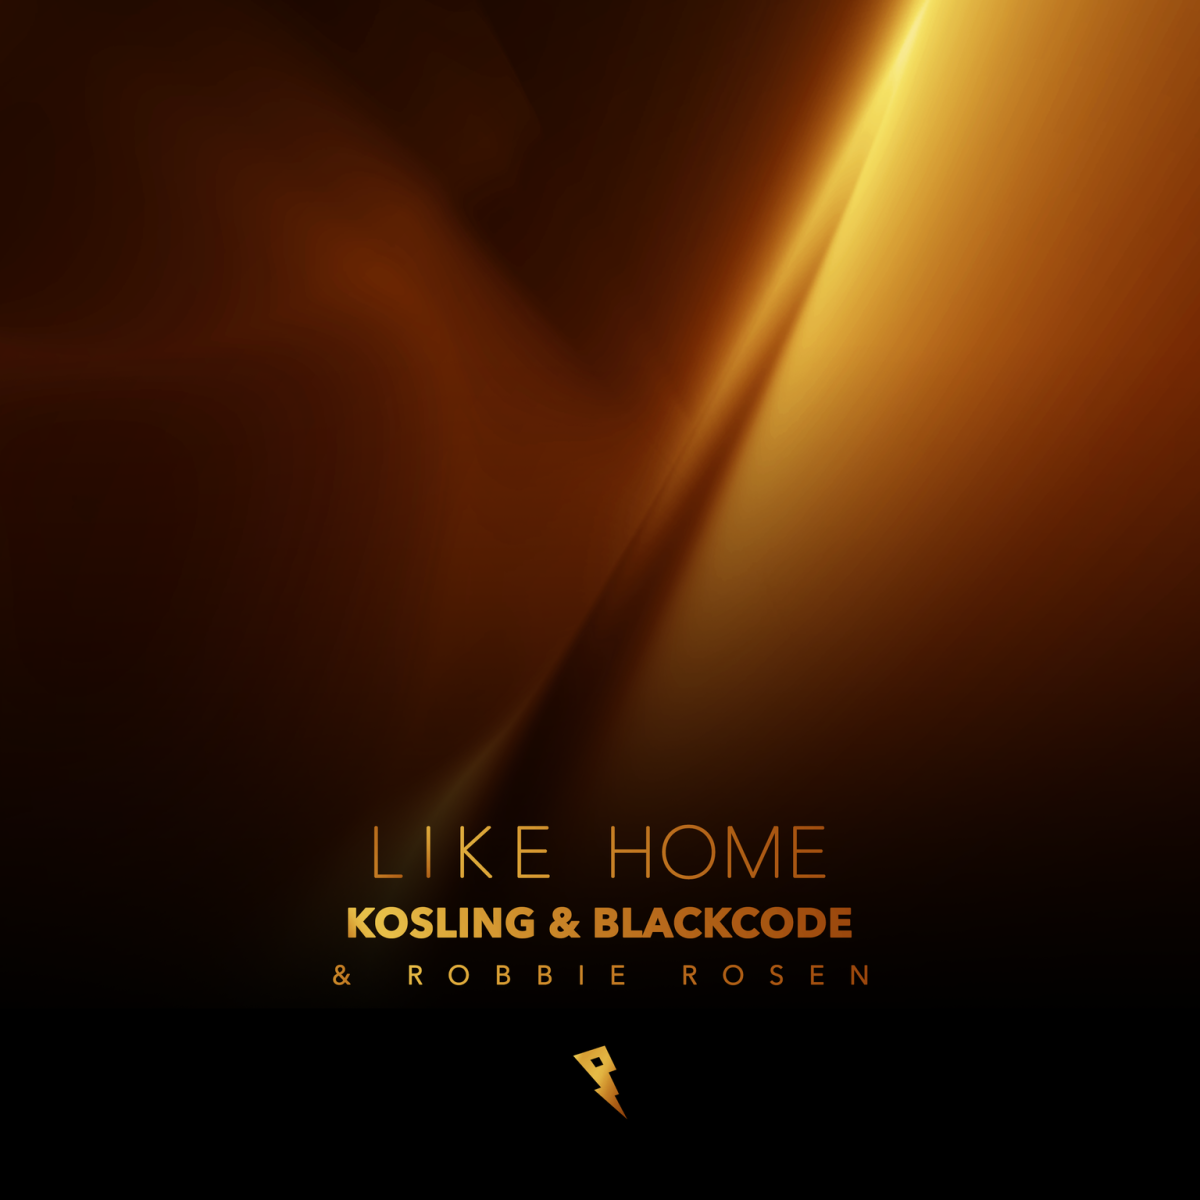 Like Home Kosling BlackCode